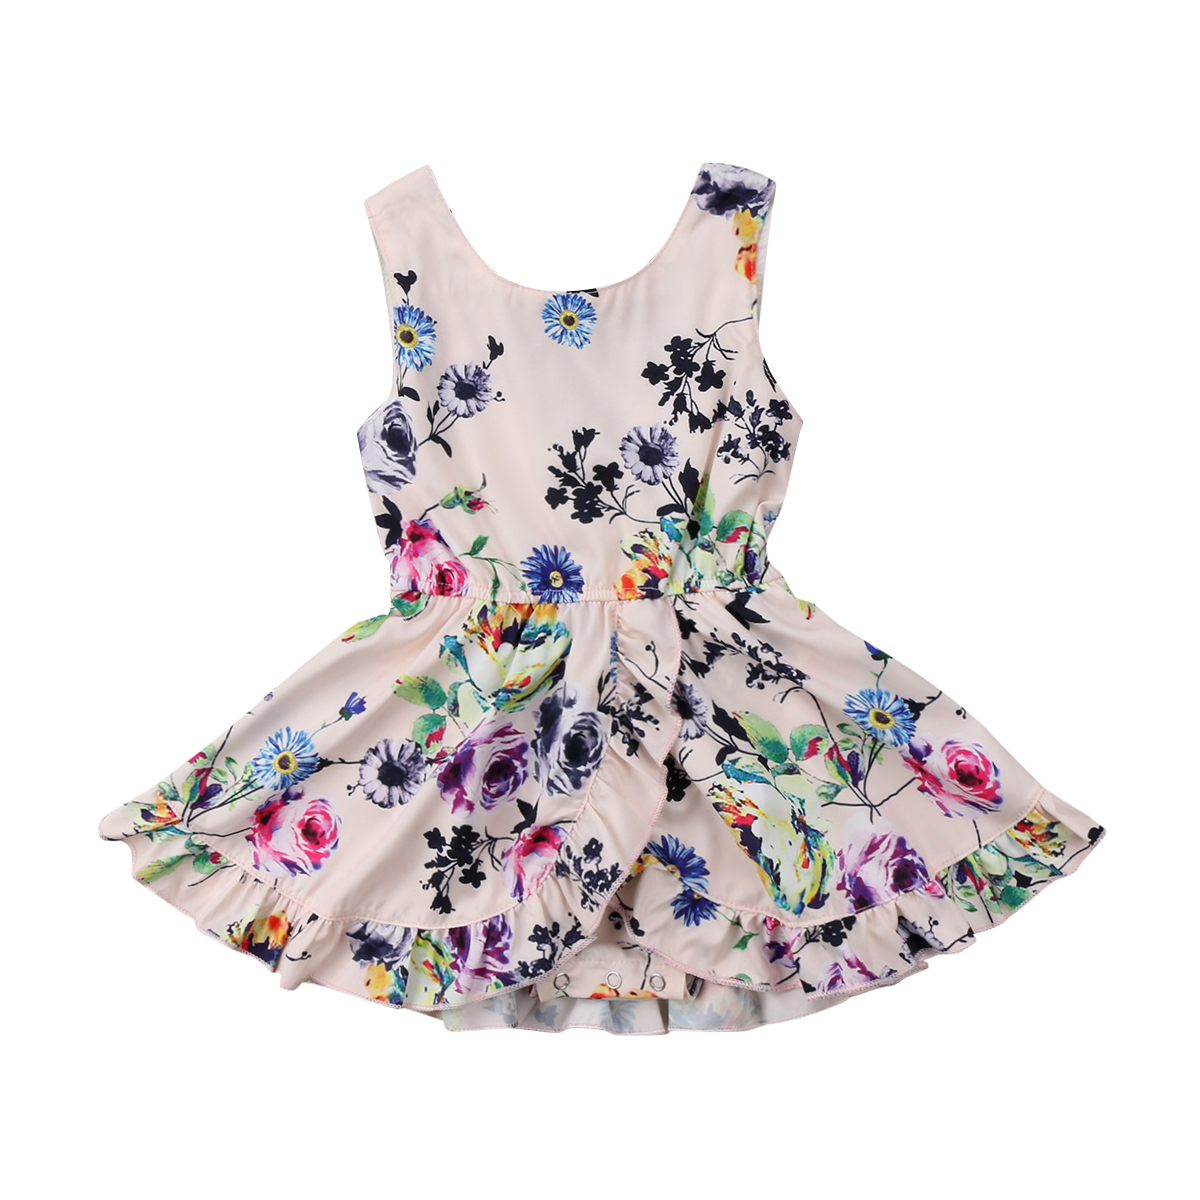 Newborn Kid font b Baby b font Girls Dress Summer Floral Pageant Party Princess Floral Sleeveless